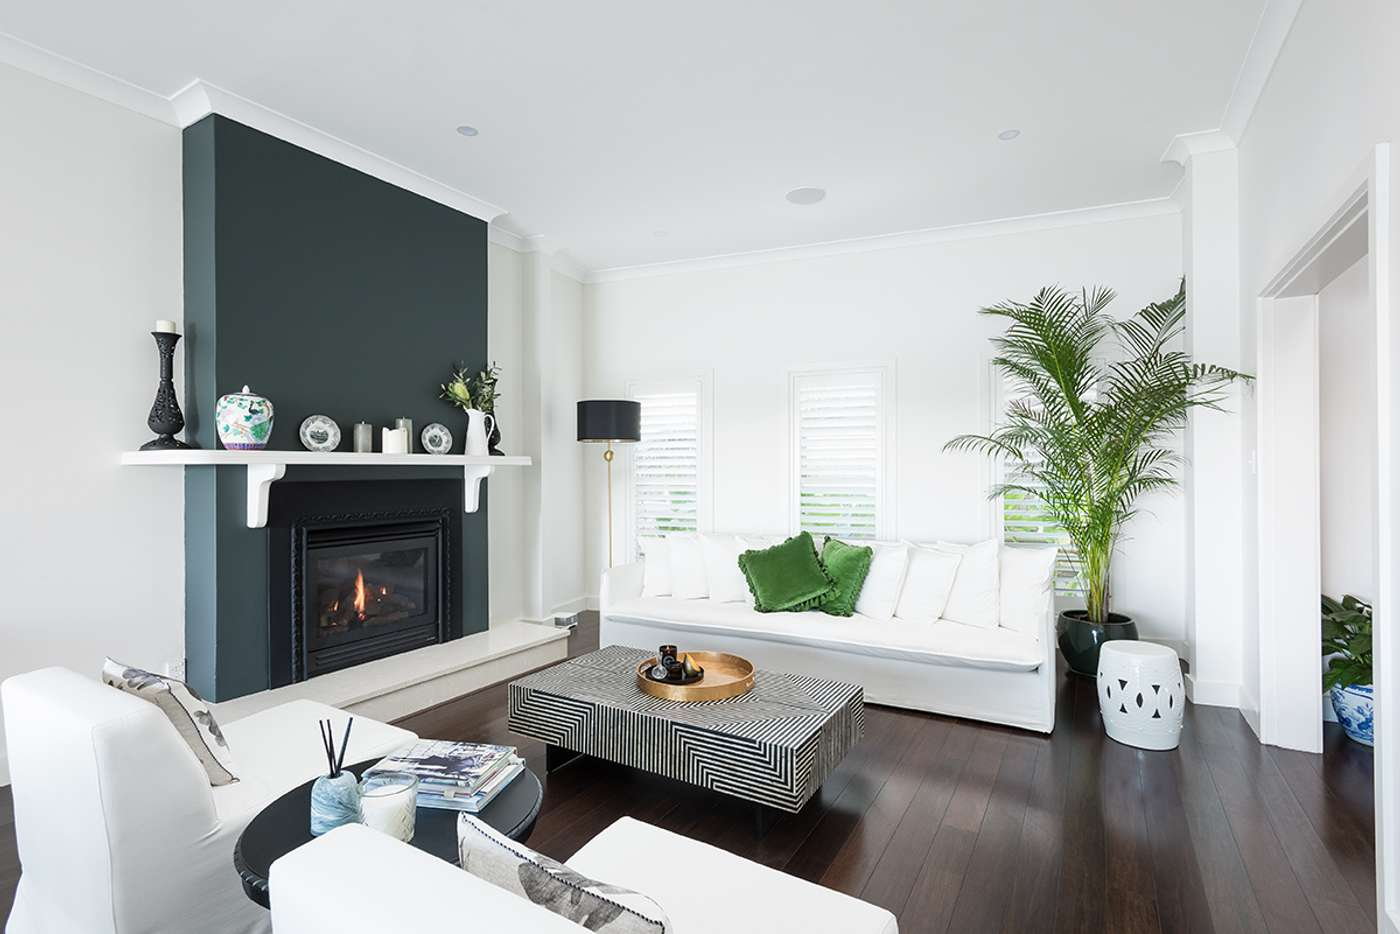 Sixth view of Homely house listing, 20 Rutherford Avenue, Burraneer NSW 2230